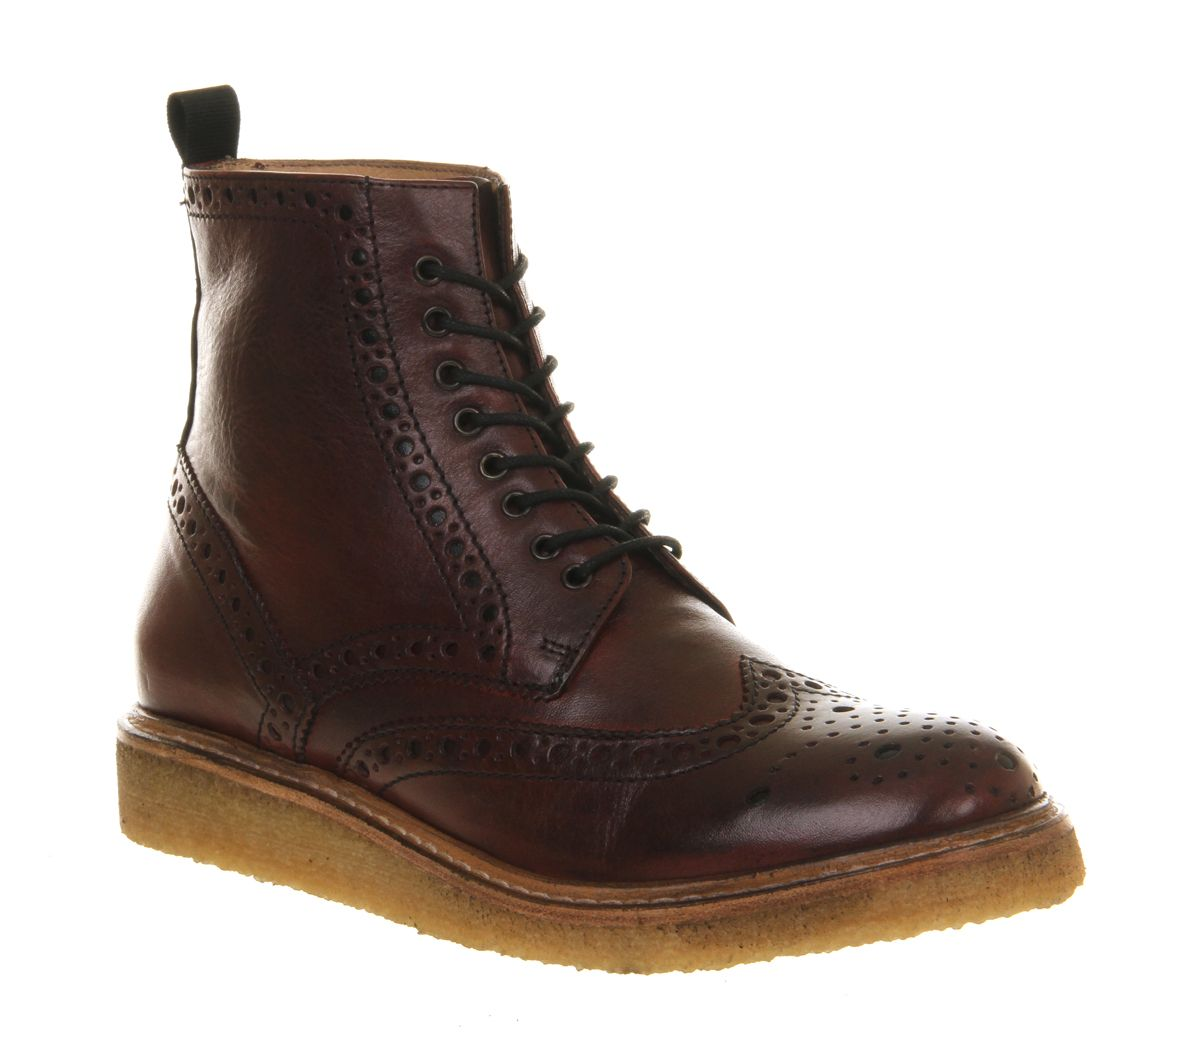 Burgundy Leather Poste Mistress Chloe Brogue Boots From Office Co Uk